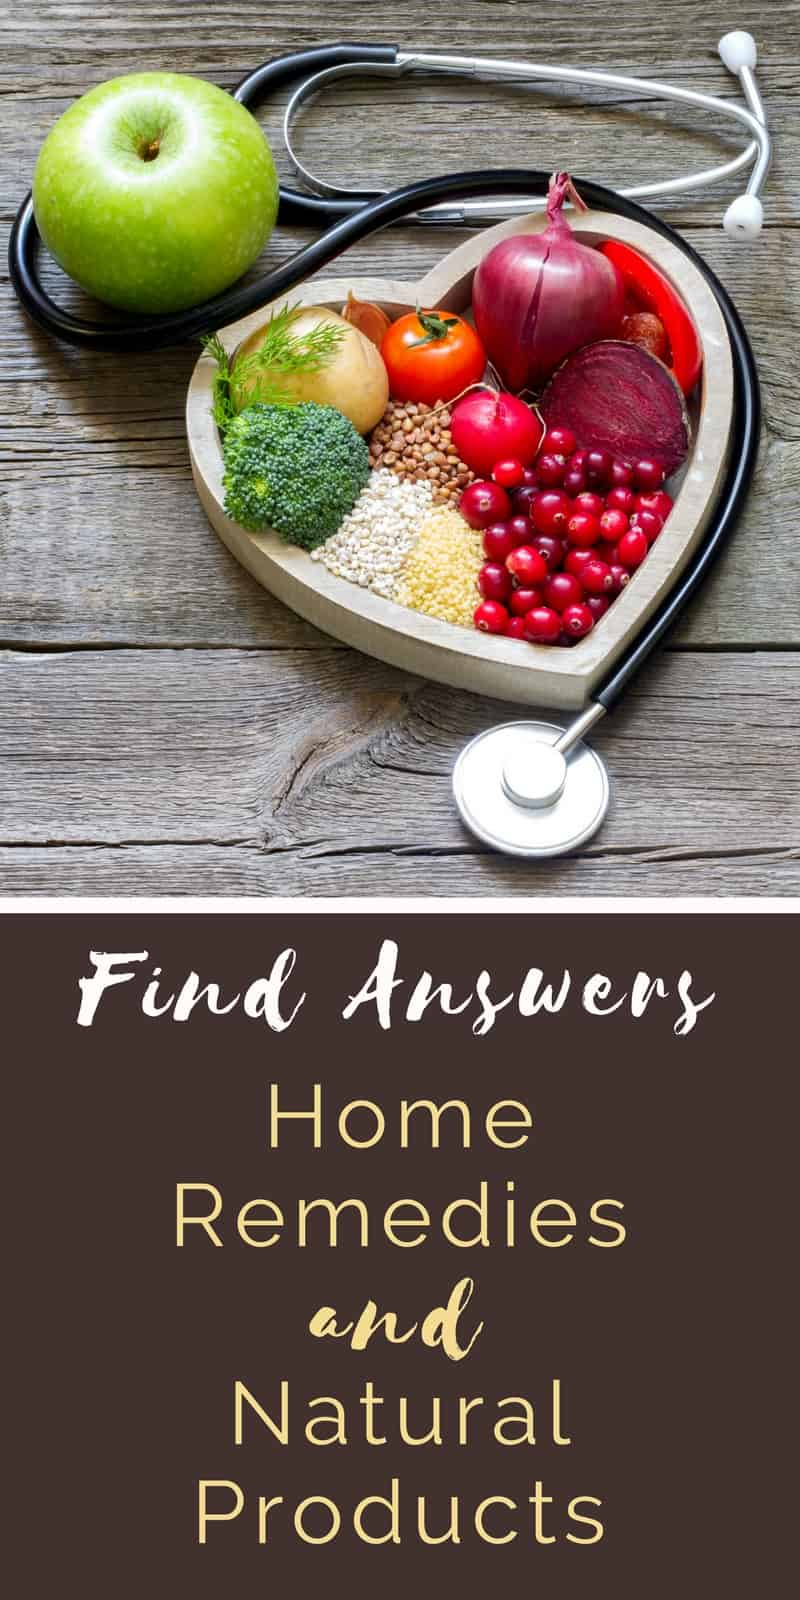 Find Answers - Home Remedies and Natural Products